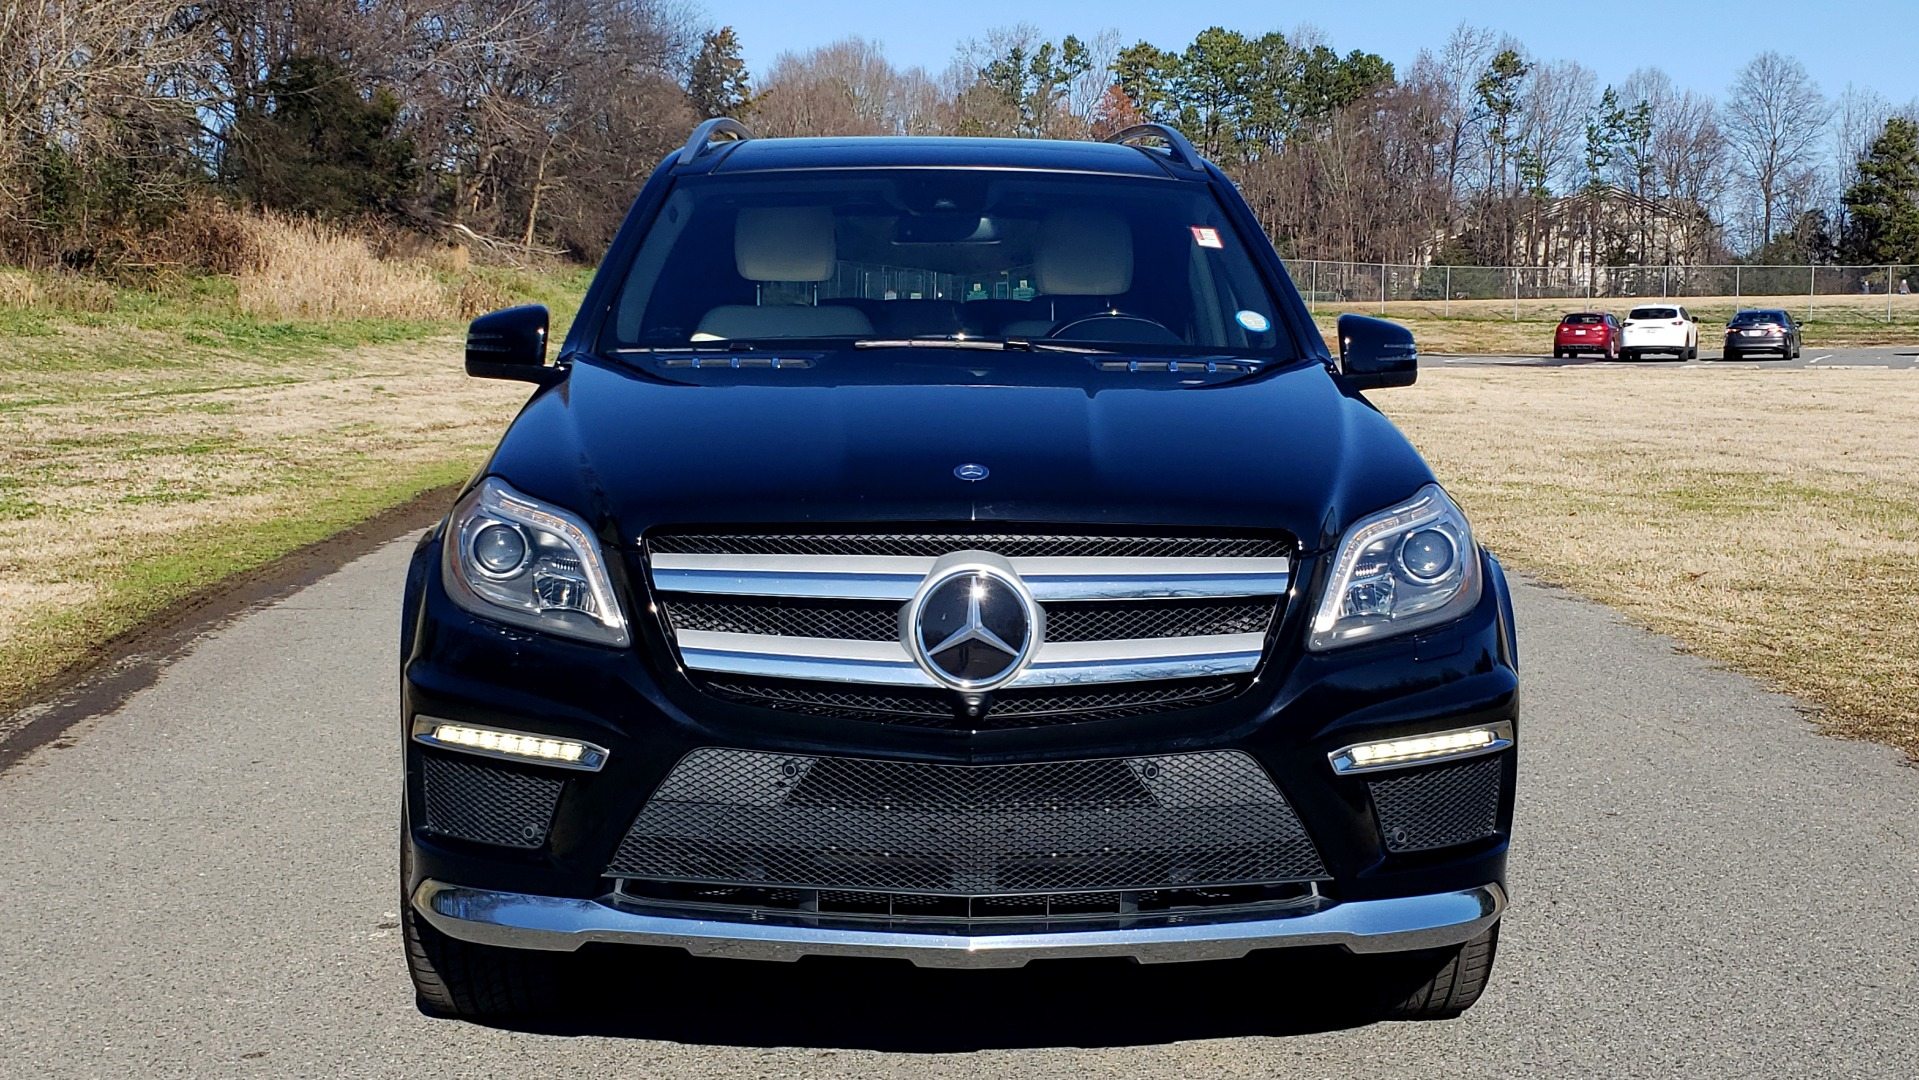 Used 2015 Mercedes-Benz GL-Class GL 550 4MATIC / DRVR ASST / PANO-ROOF / DESIGNO / REARVIEW for sale Sold at Formula Imports in Charlotte NC 28227 8